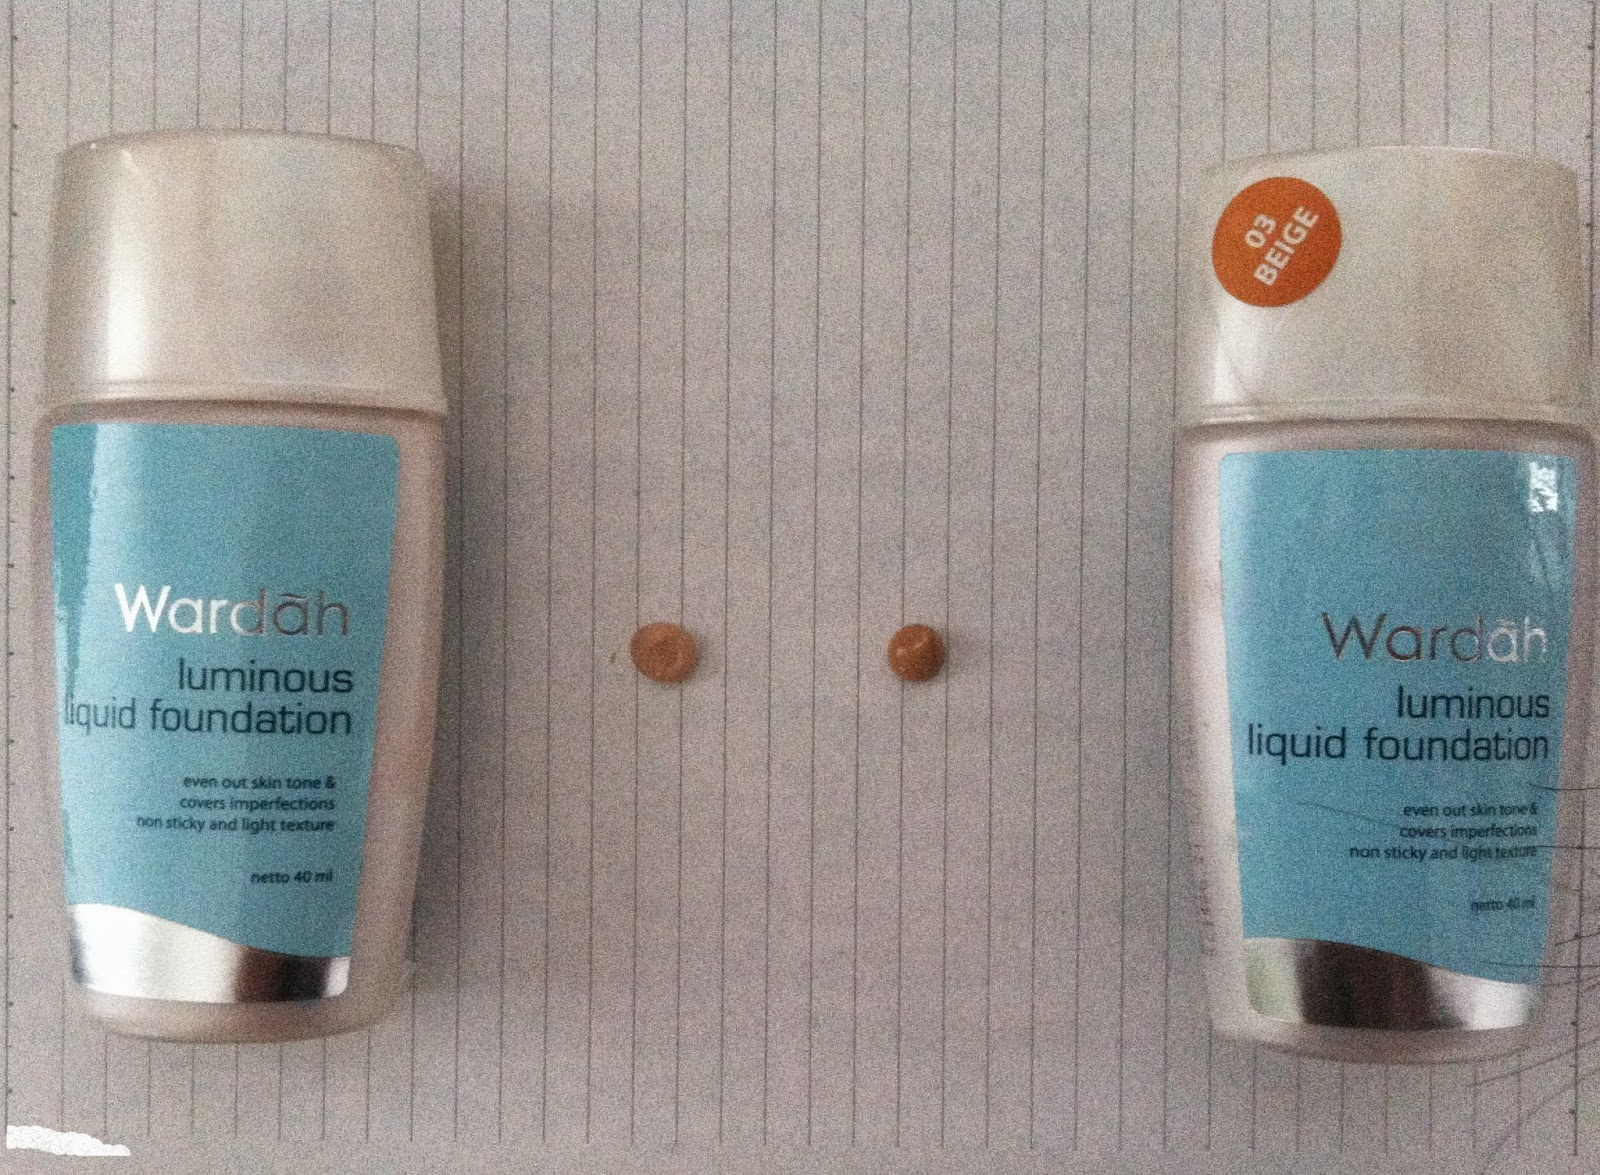 Beauty And Lifestyle: Wardah Luminous Liquid Foundation Review